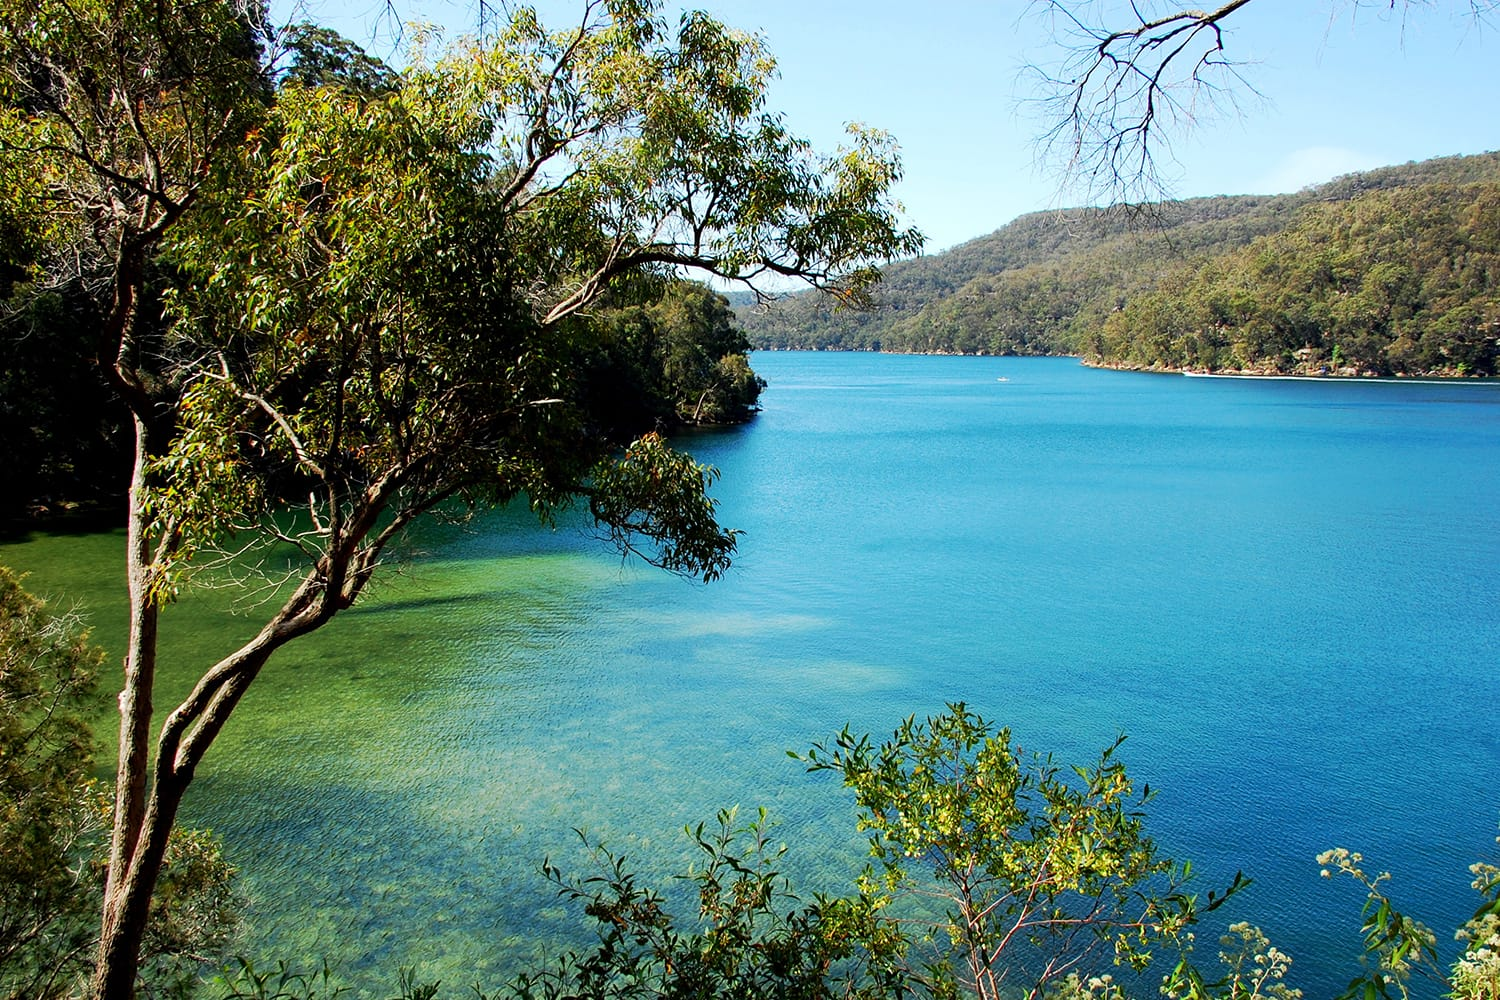 Ku-ring-gai Chase National Park. Mont Kuring-gai track. Tracking in Australia, New South Wales.